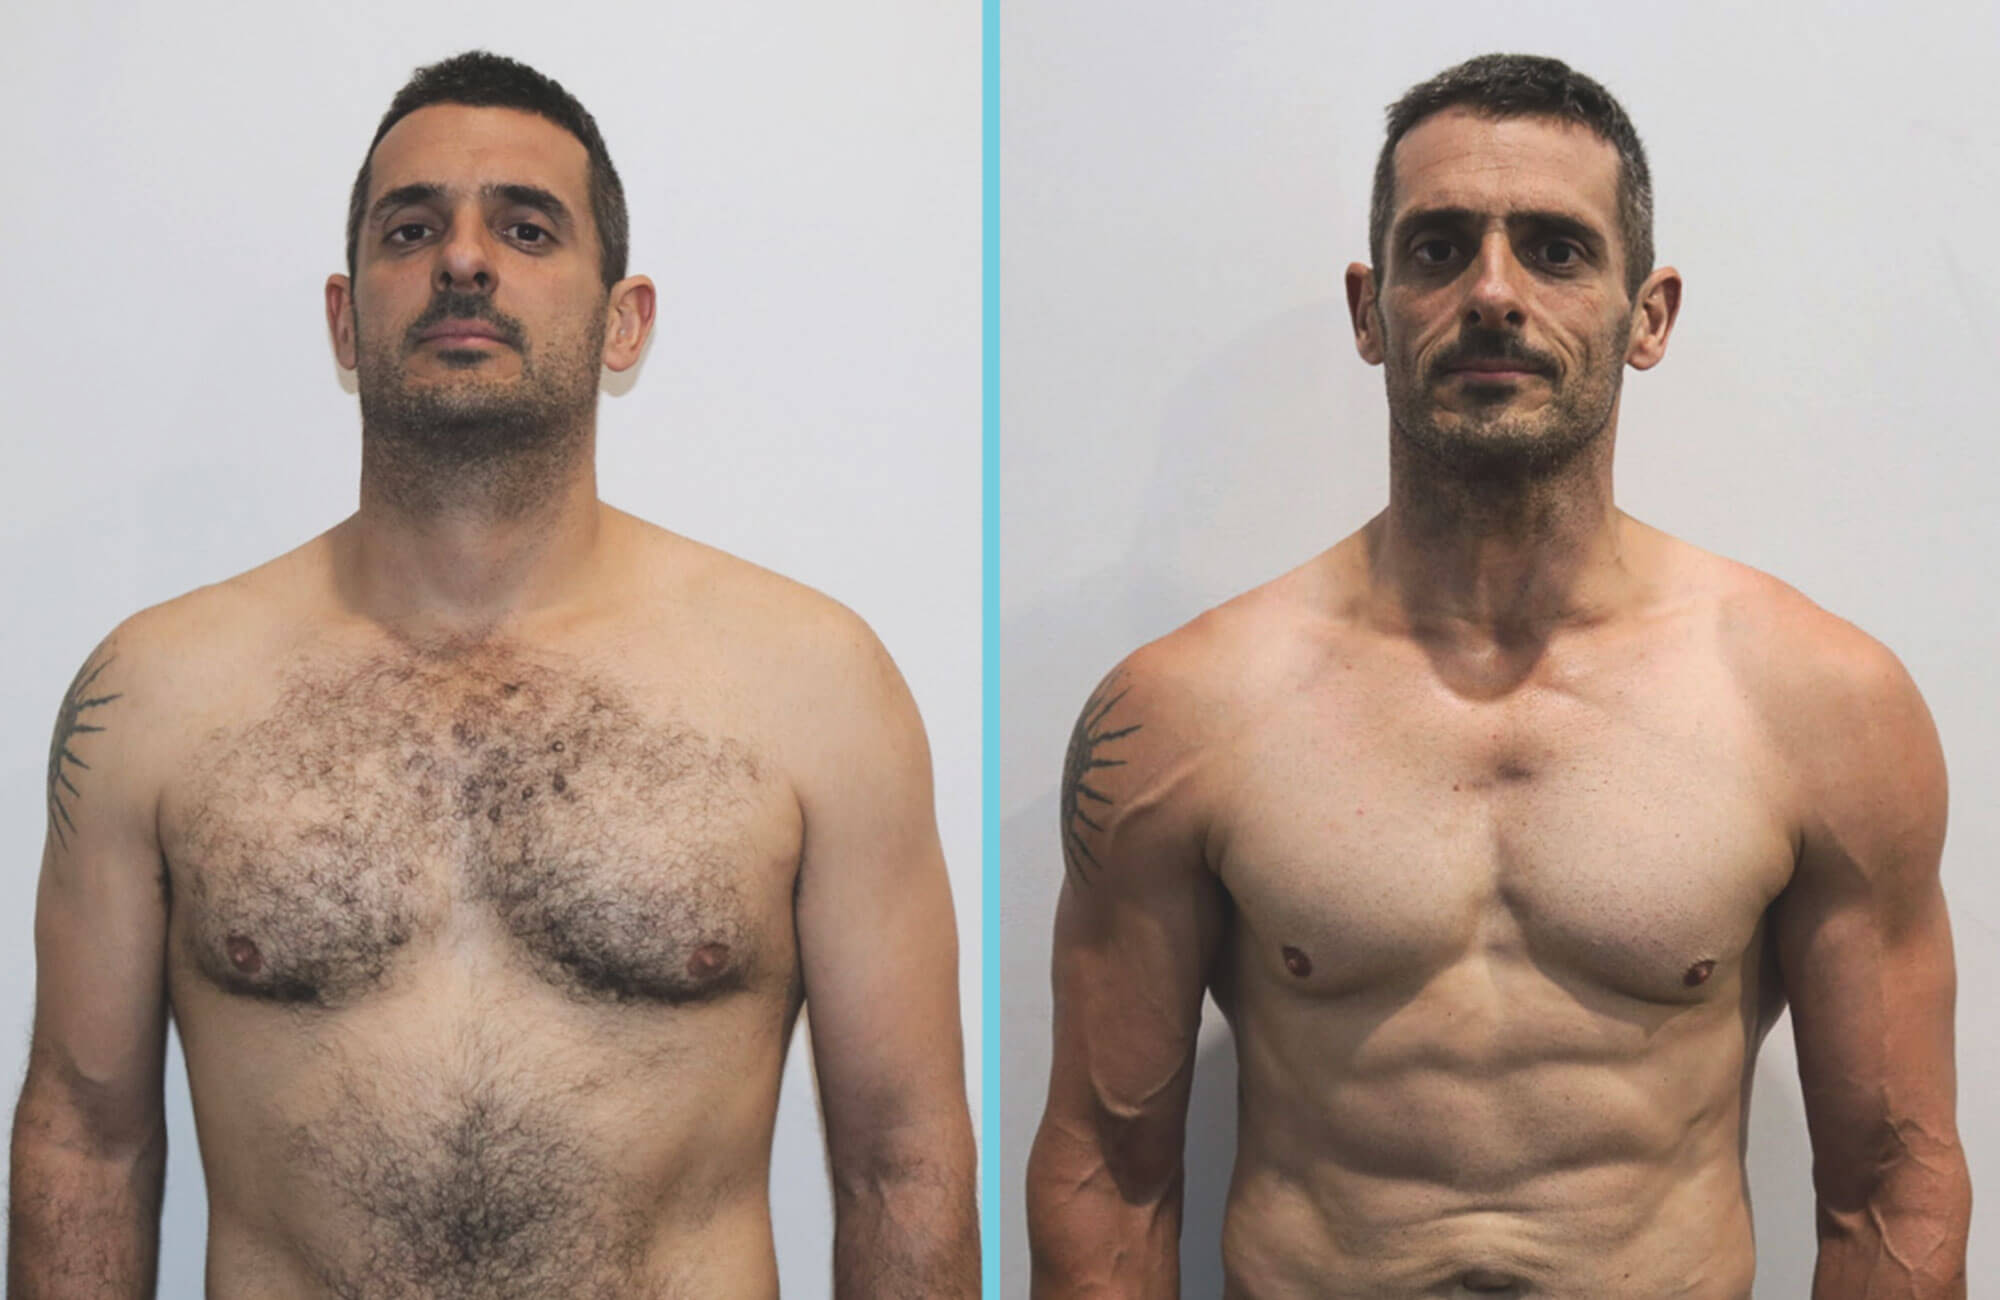 The Hollywood Transformation Protocol